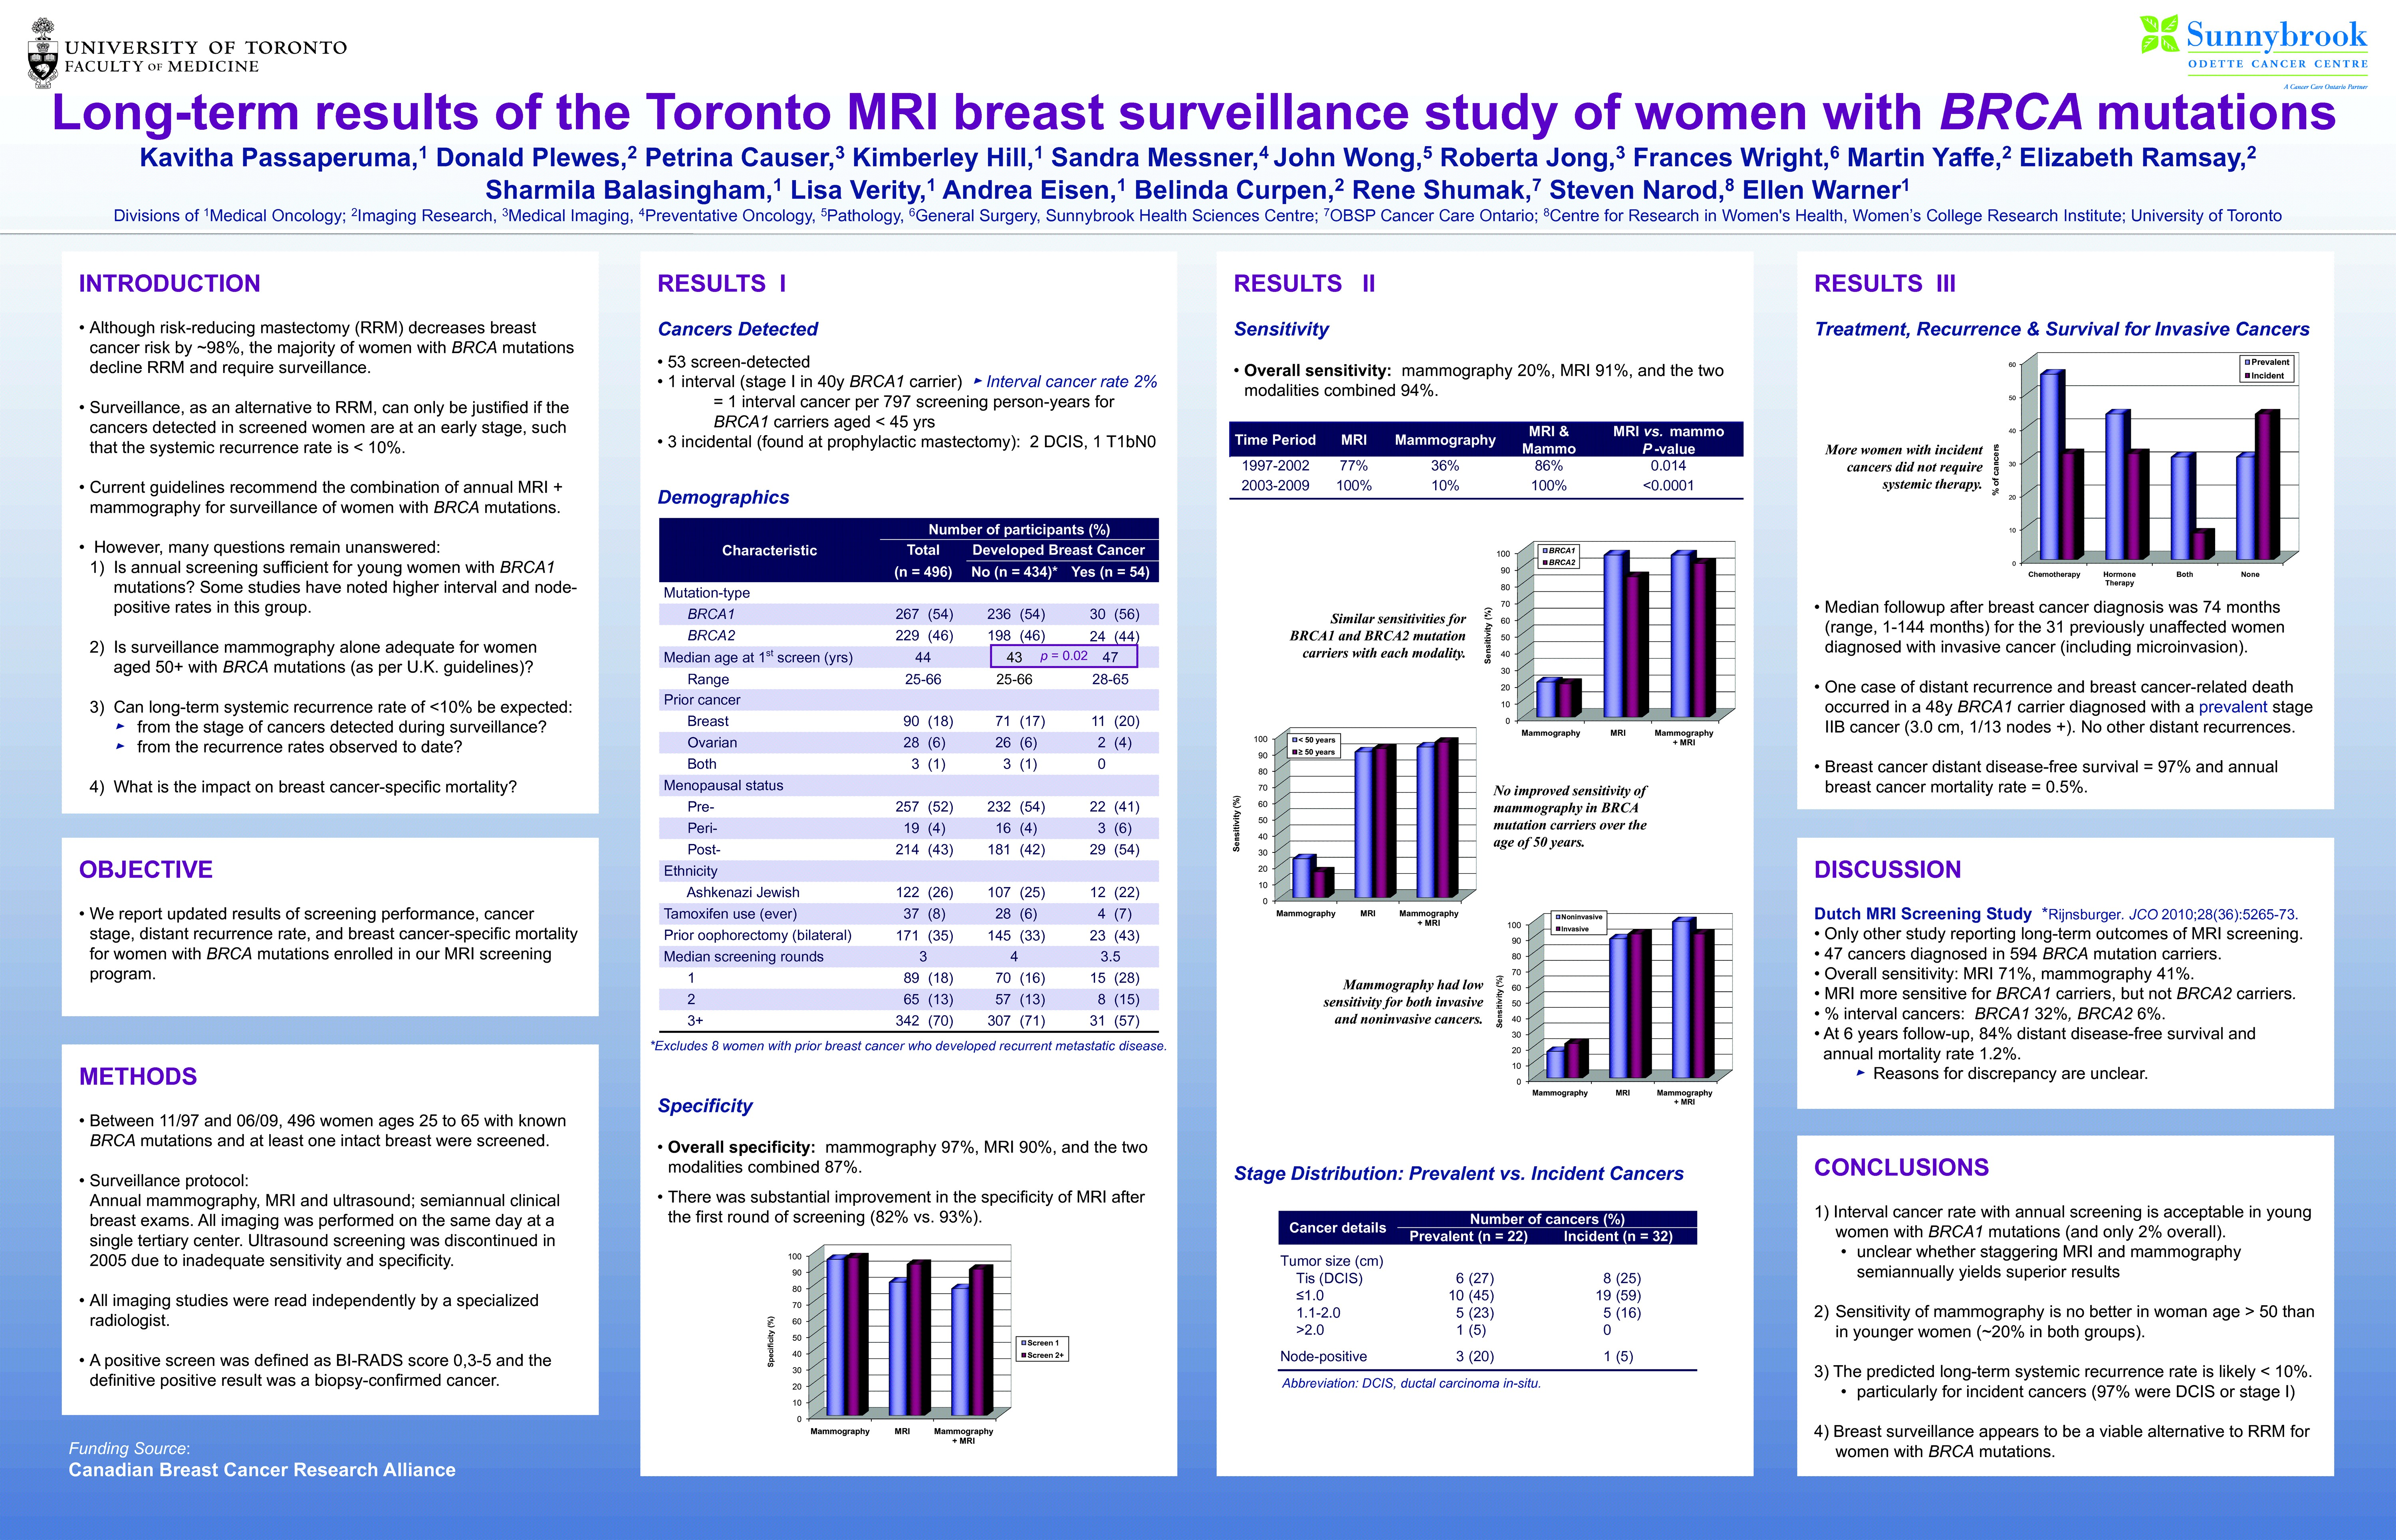 Can Breast mri screening guidelines